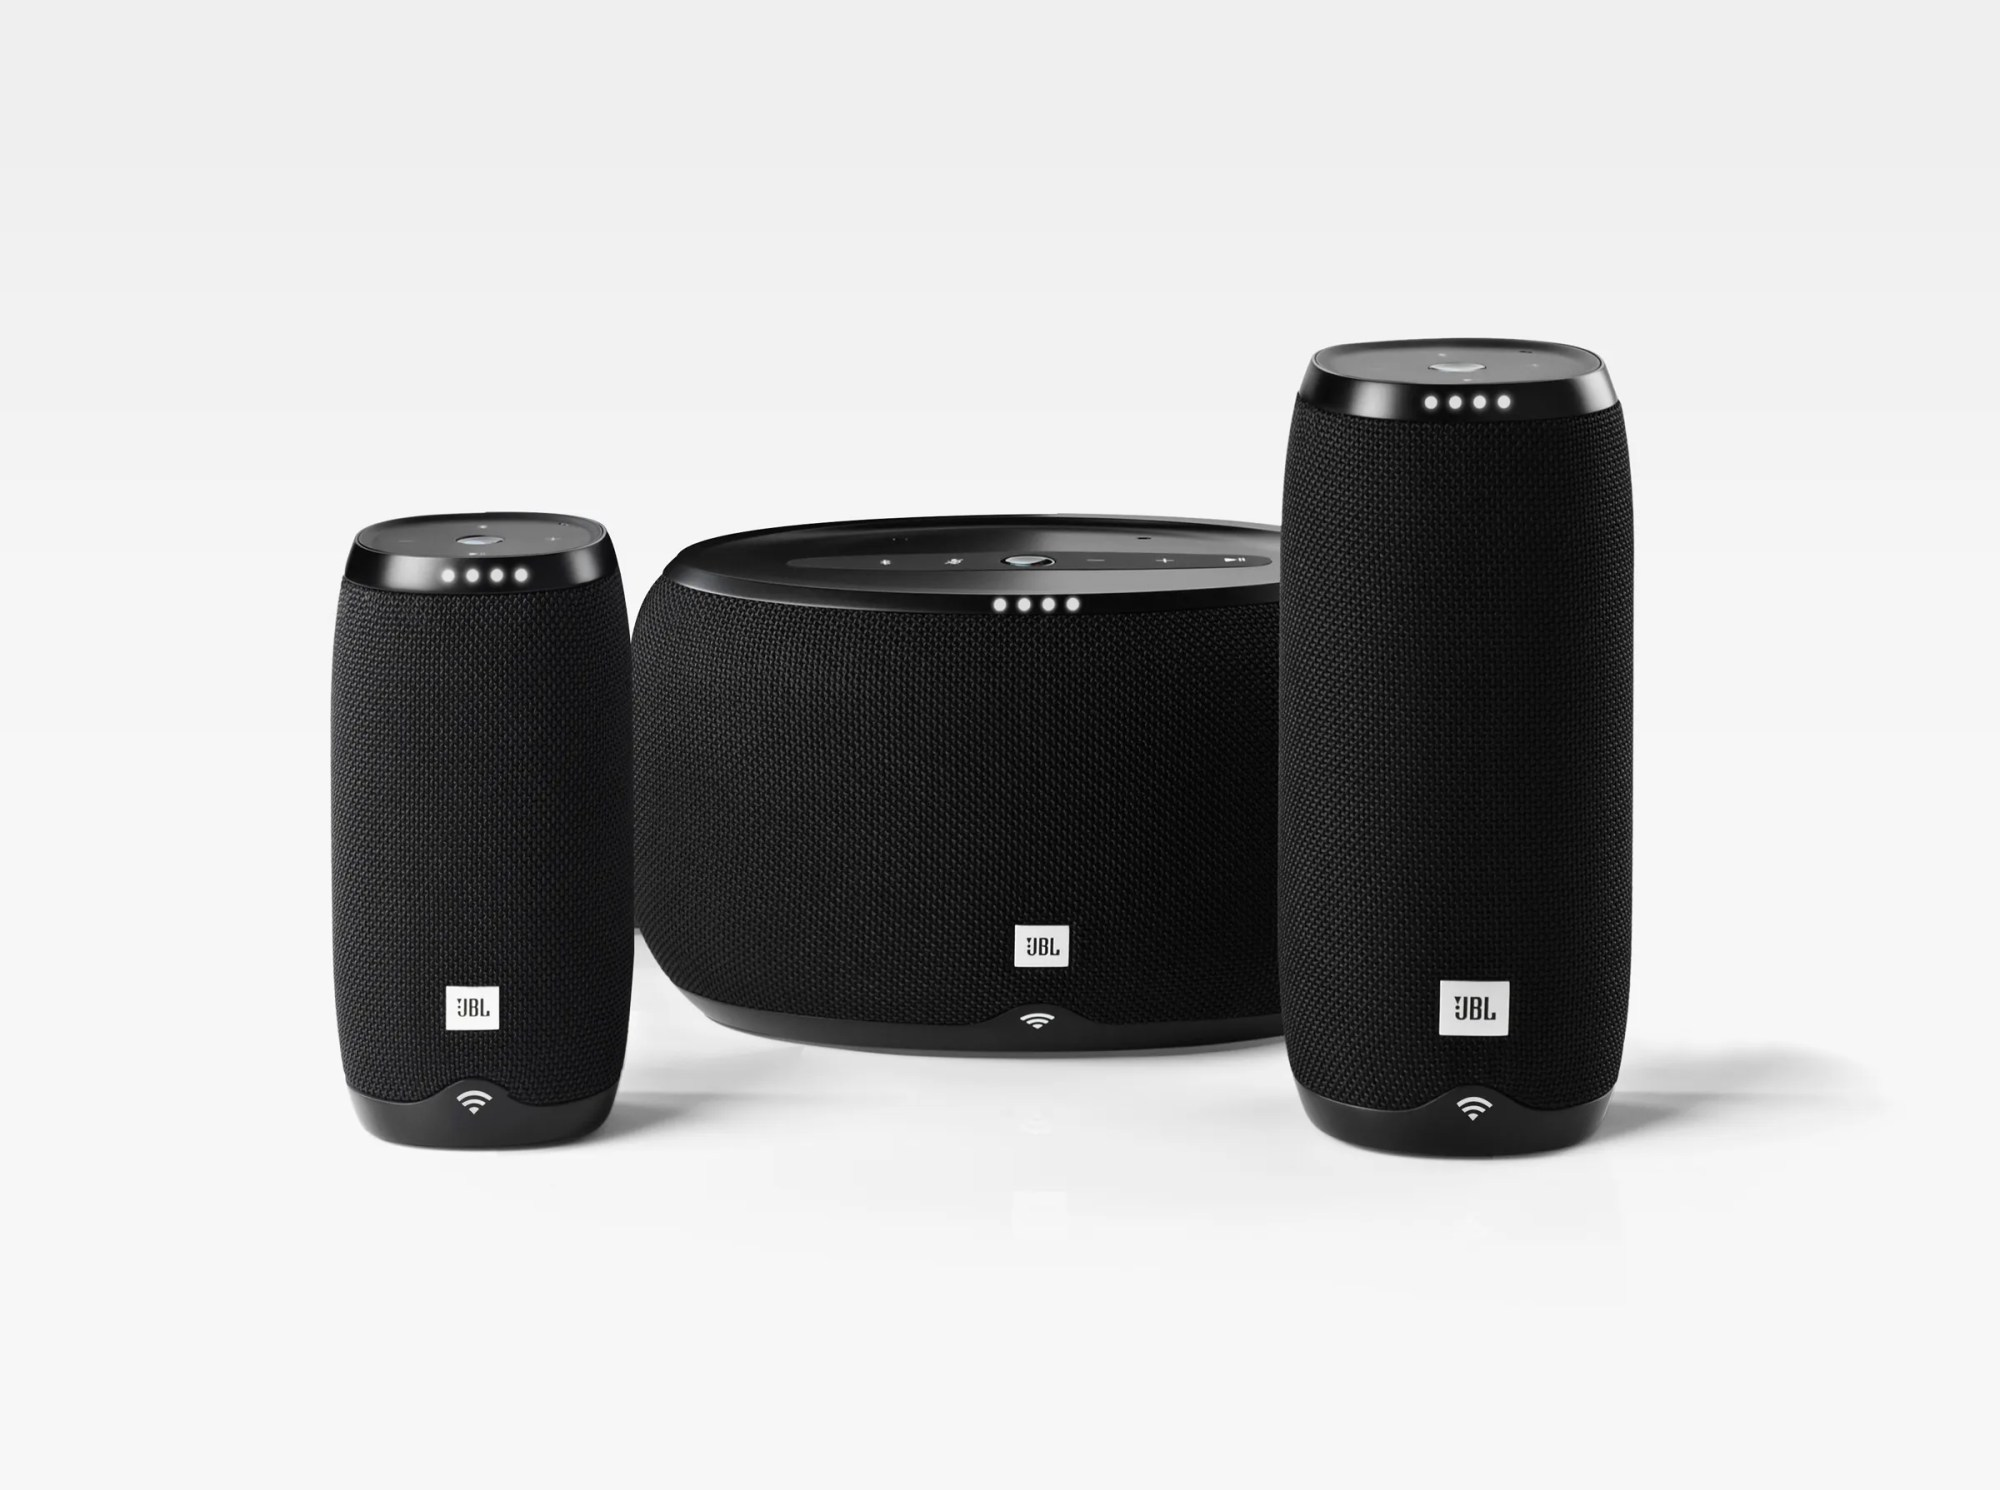 hight resolution of review jbl link speakers with google assistant